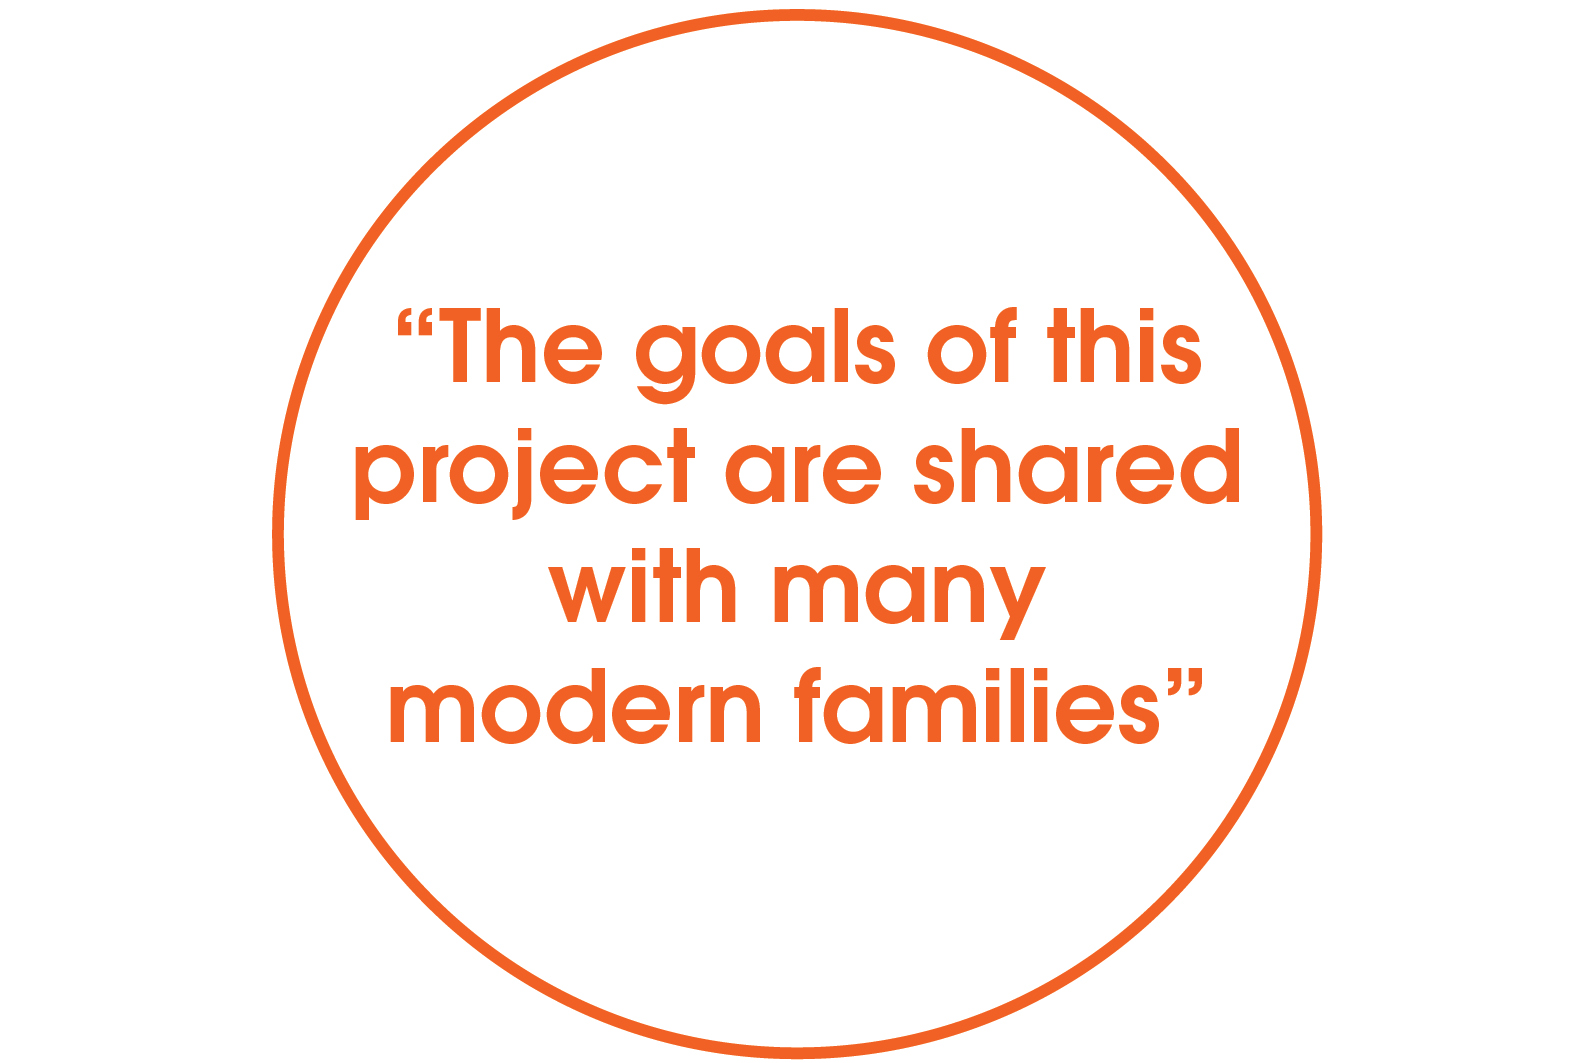 the goals of this project are shared with many modern families quote